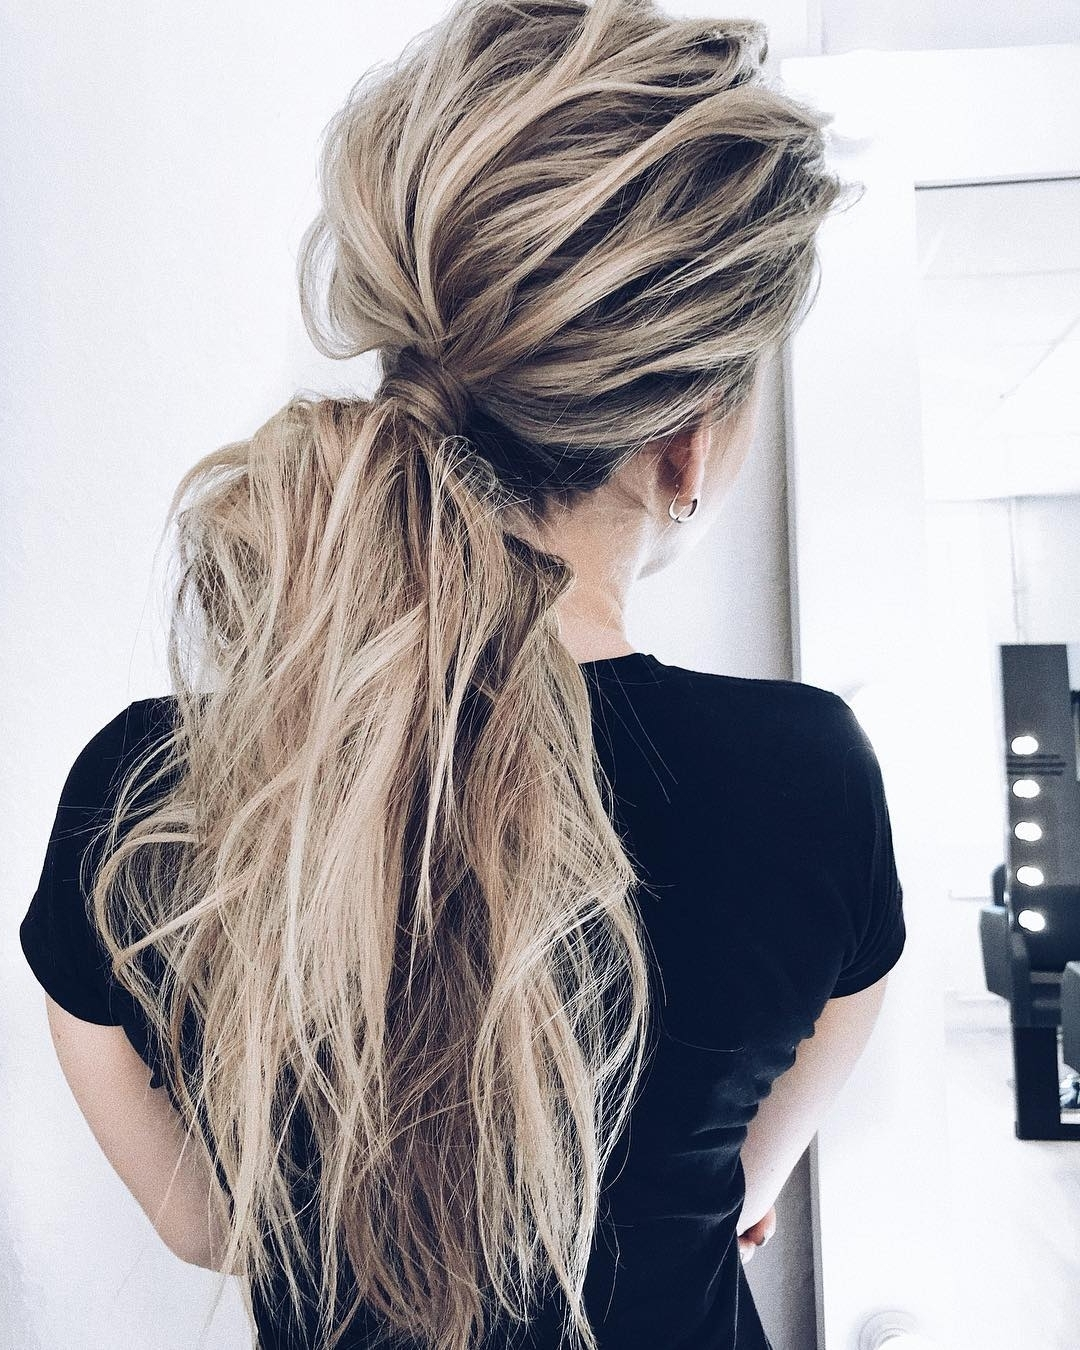 10 Creative Ponytail Hairstyles For Long Hair, Summer Hairstyle Inside 2017 Curly Pony Hairstyles For Ultra Long Hair (View 1 of 20)